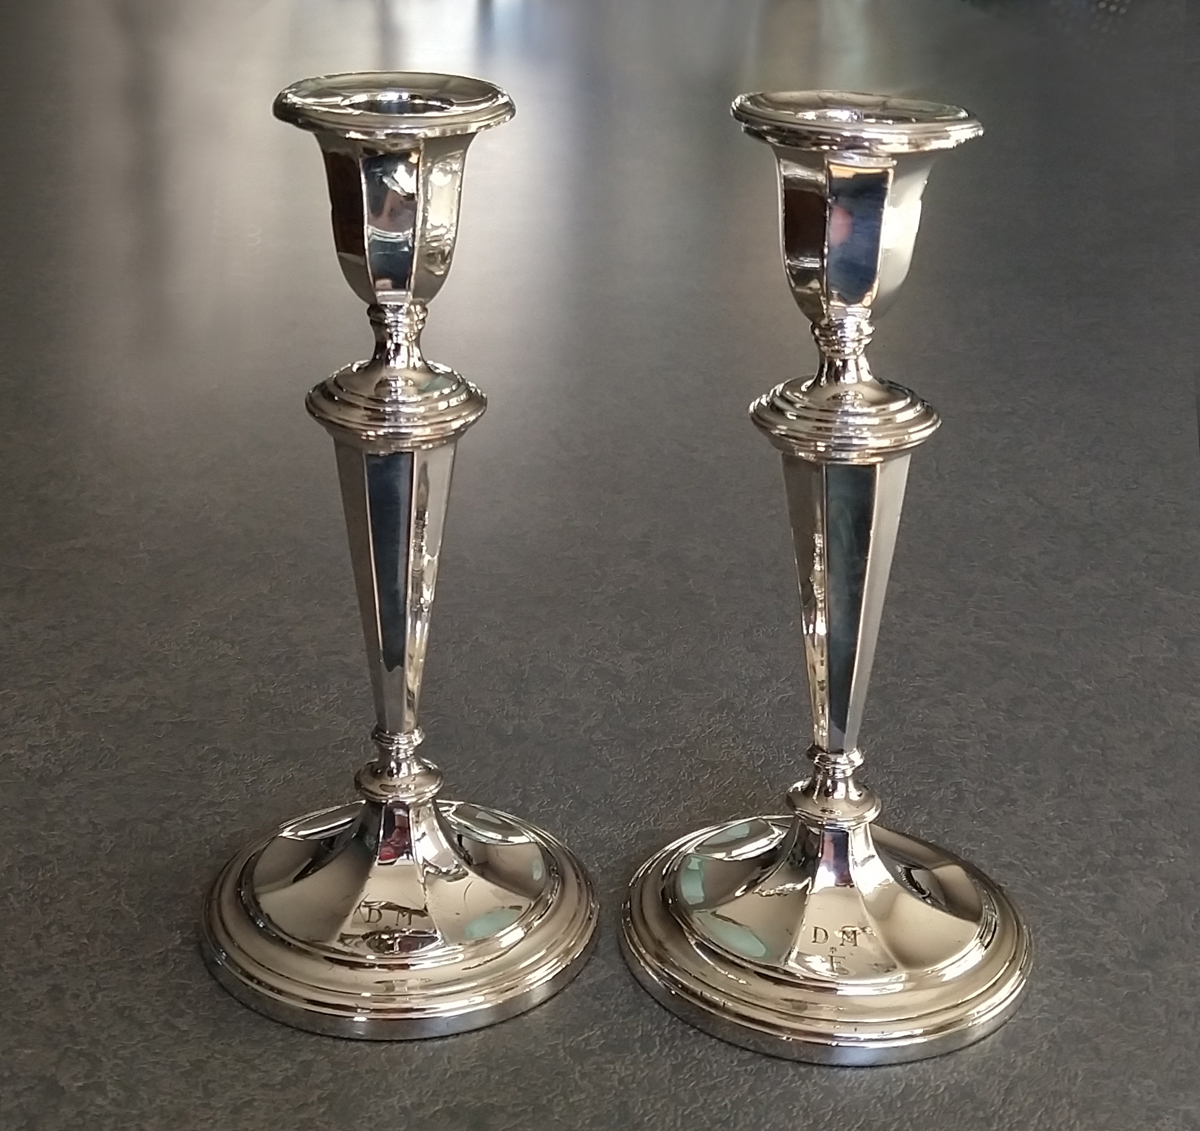 sterling silver candlesticks polished and straightened